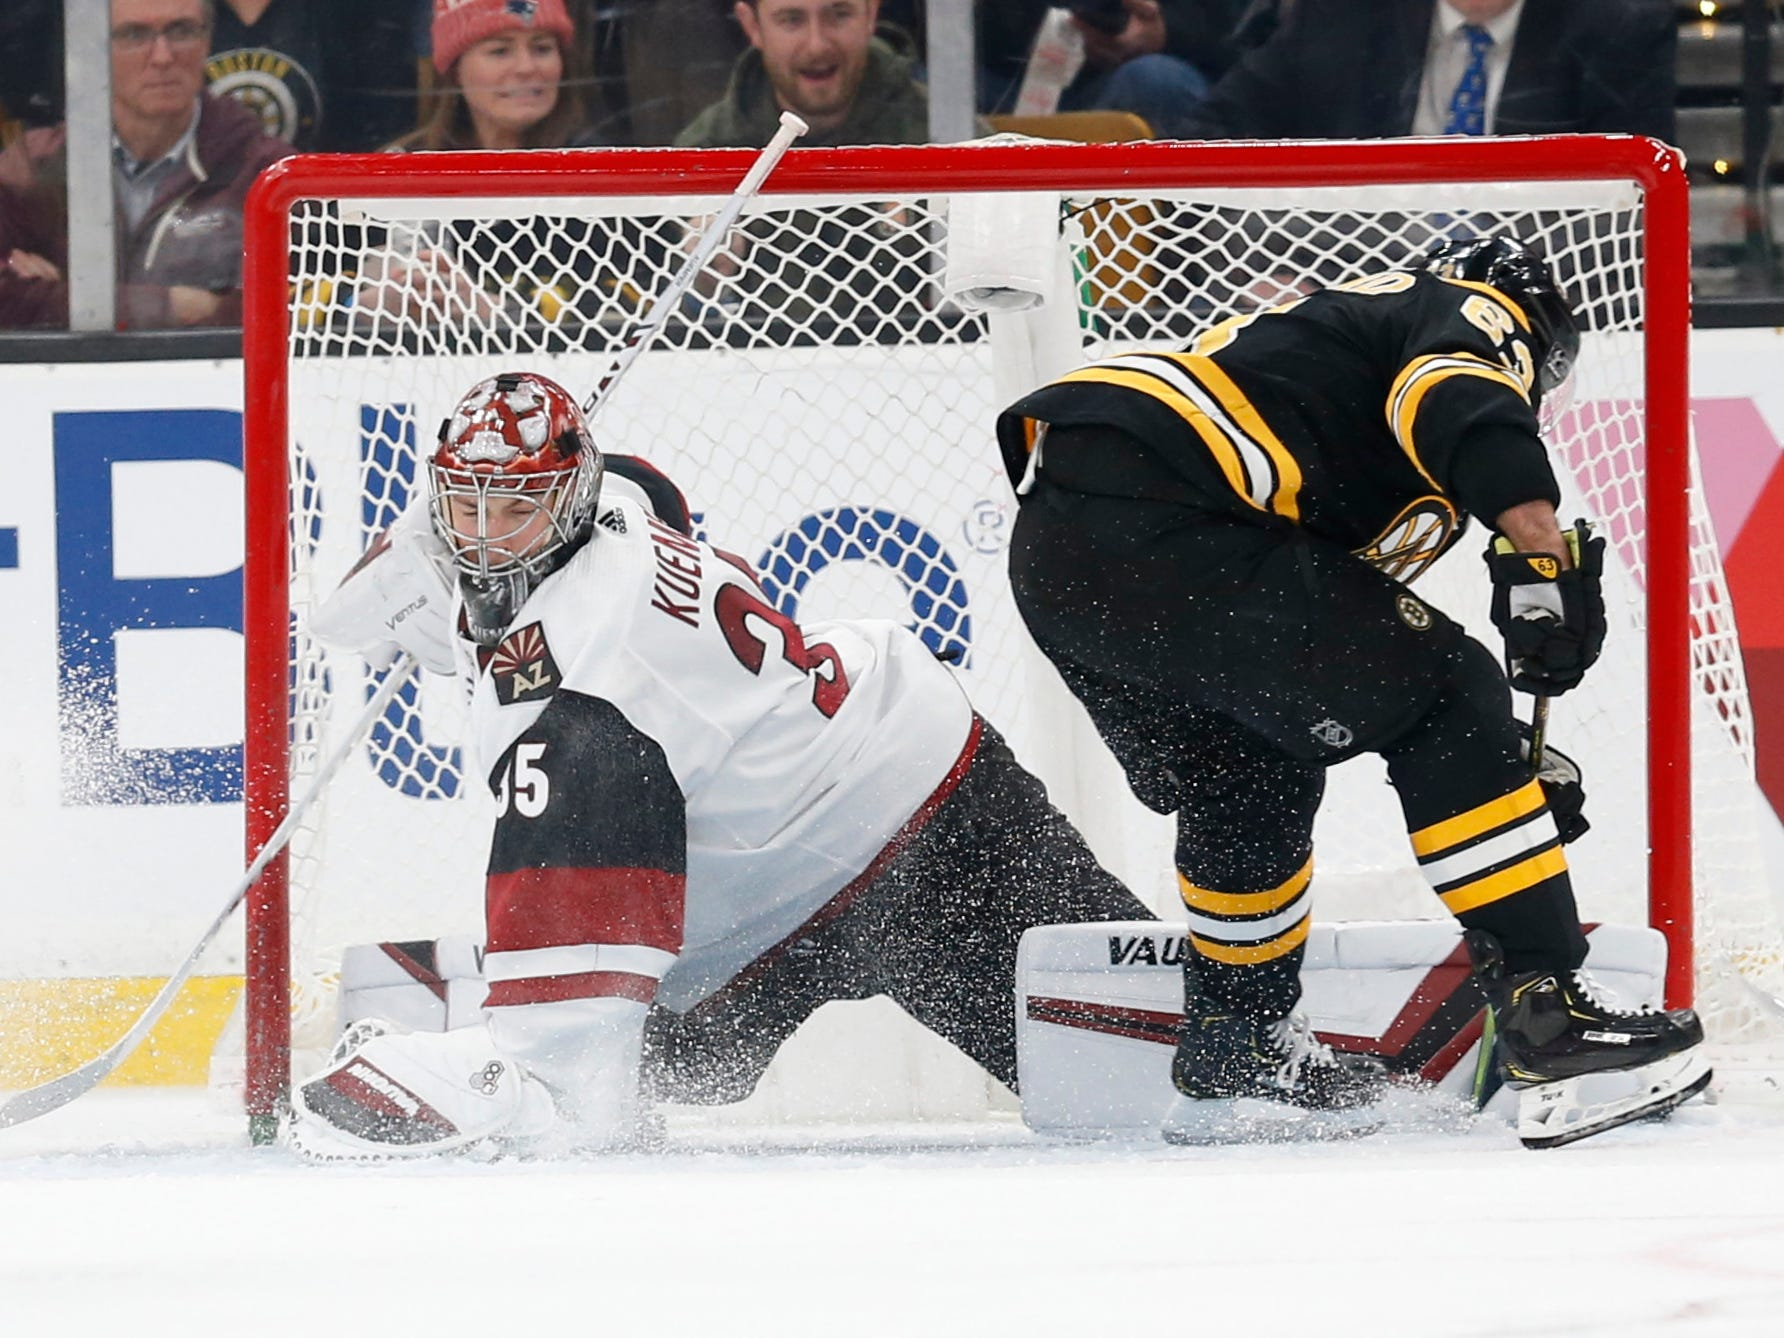 Dec 11, 2018; Boston, MA, USA; Arizona Coyotes goaltender Darcy Kuemper (35) stops a shot by Boston Bruins left wing Brad Marchand (63) during the third period at TD Garden. Mandatory Credit: Greg M. Cooper-USA TODAY Sports